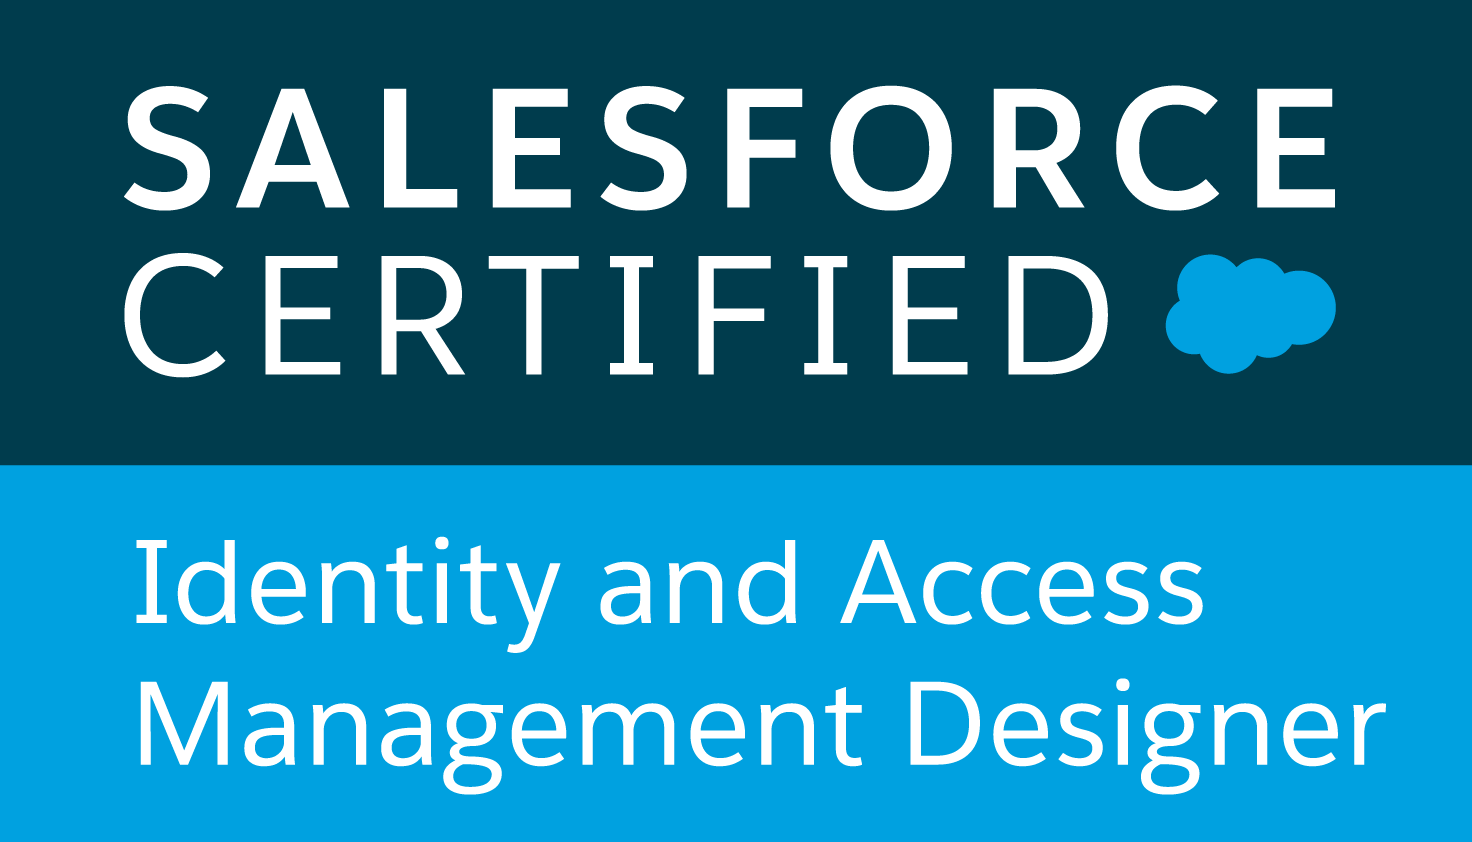 Identity and Access Management Designer